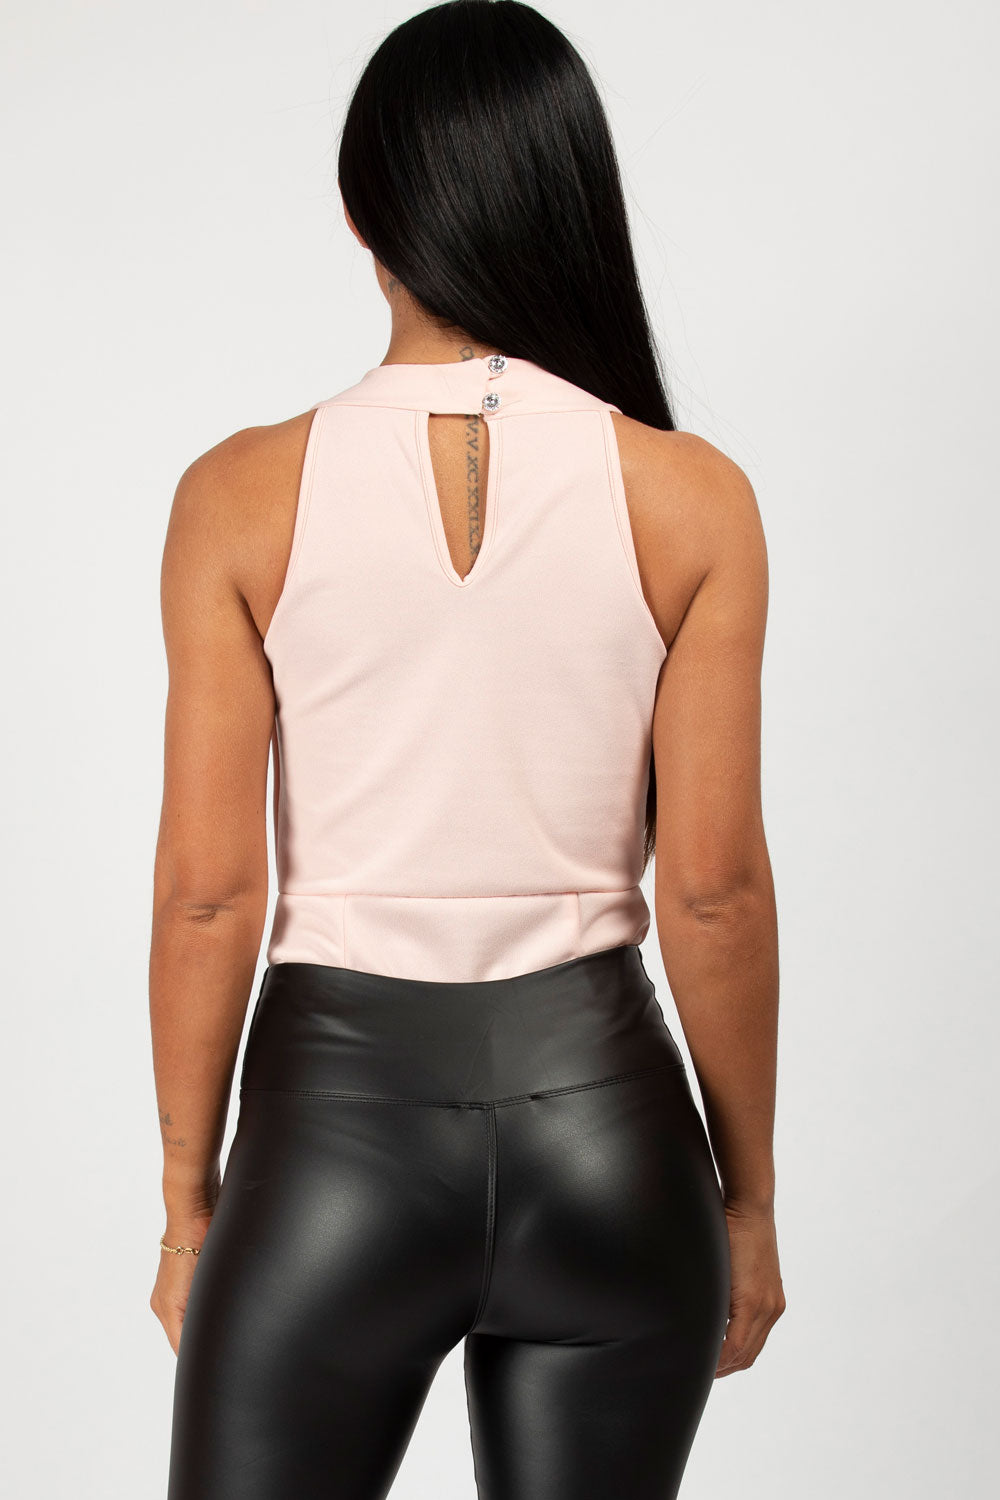 pink sleeveless bodysuit